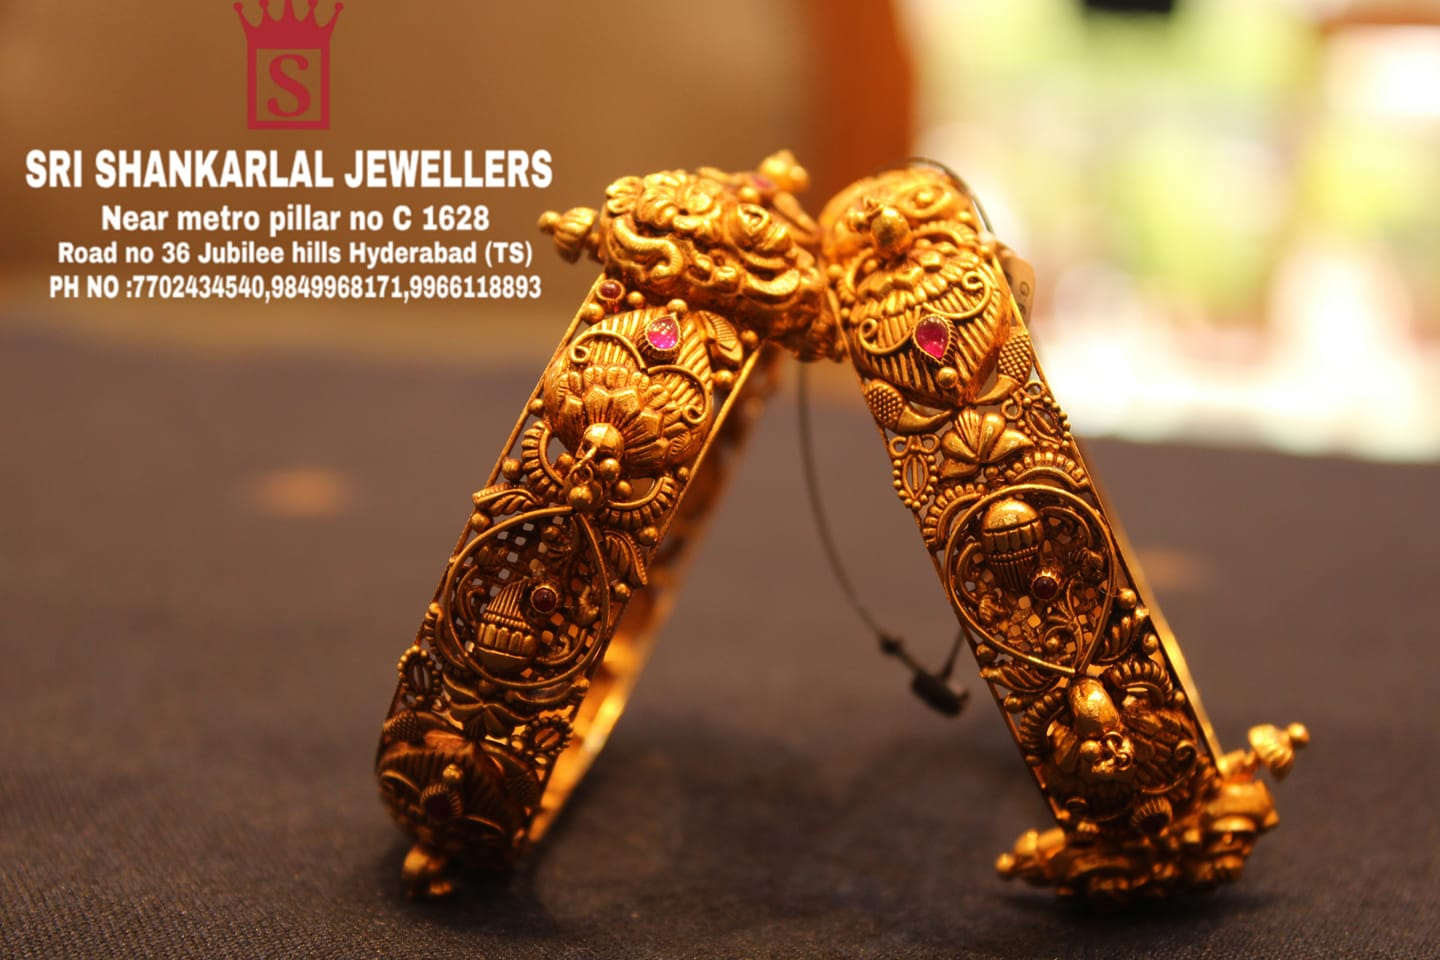 Latest 22k gold Nakshi Bangle in light weight and heavy looking and vast collection please visit us on video call pH no: 770243450 9849968171 9966118893 to see more collection 2021-06-28